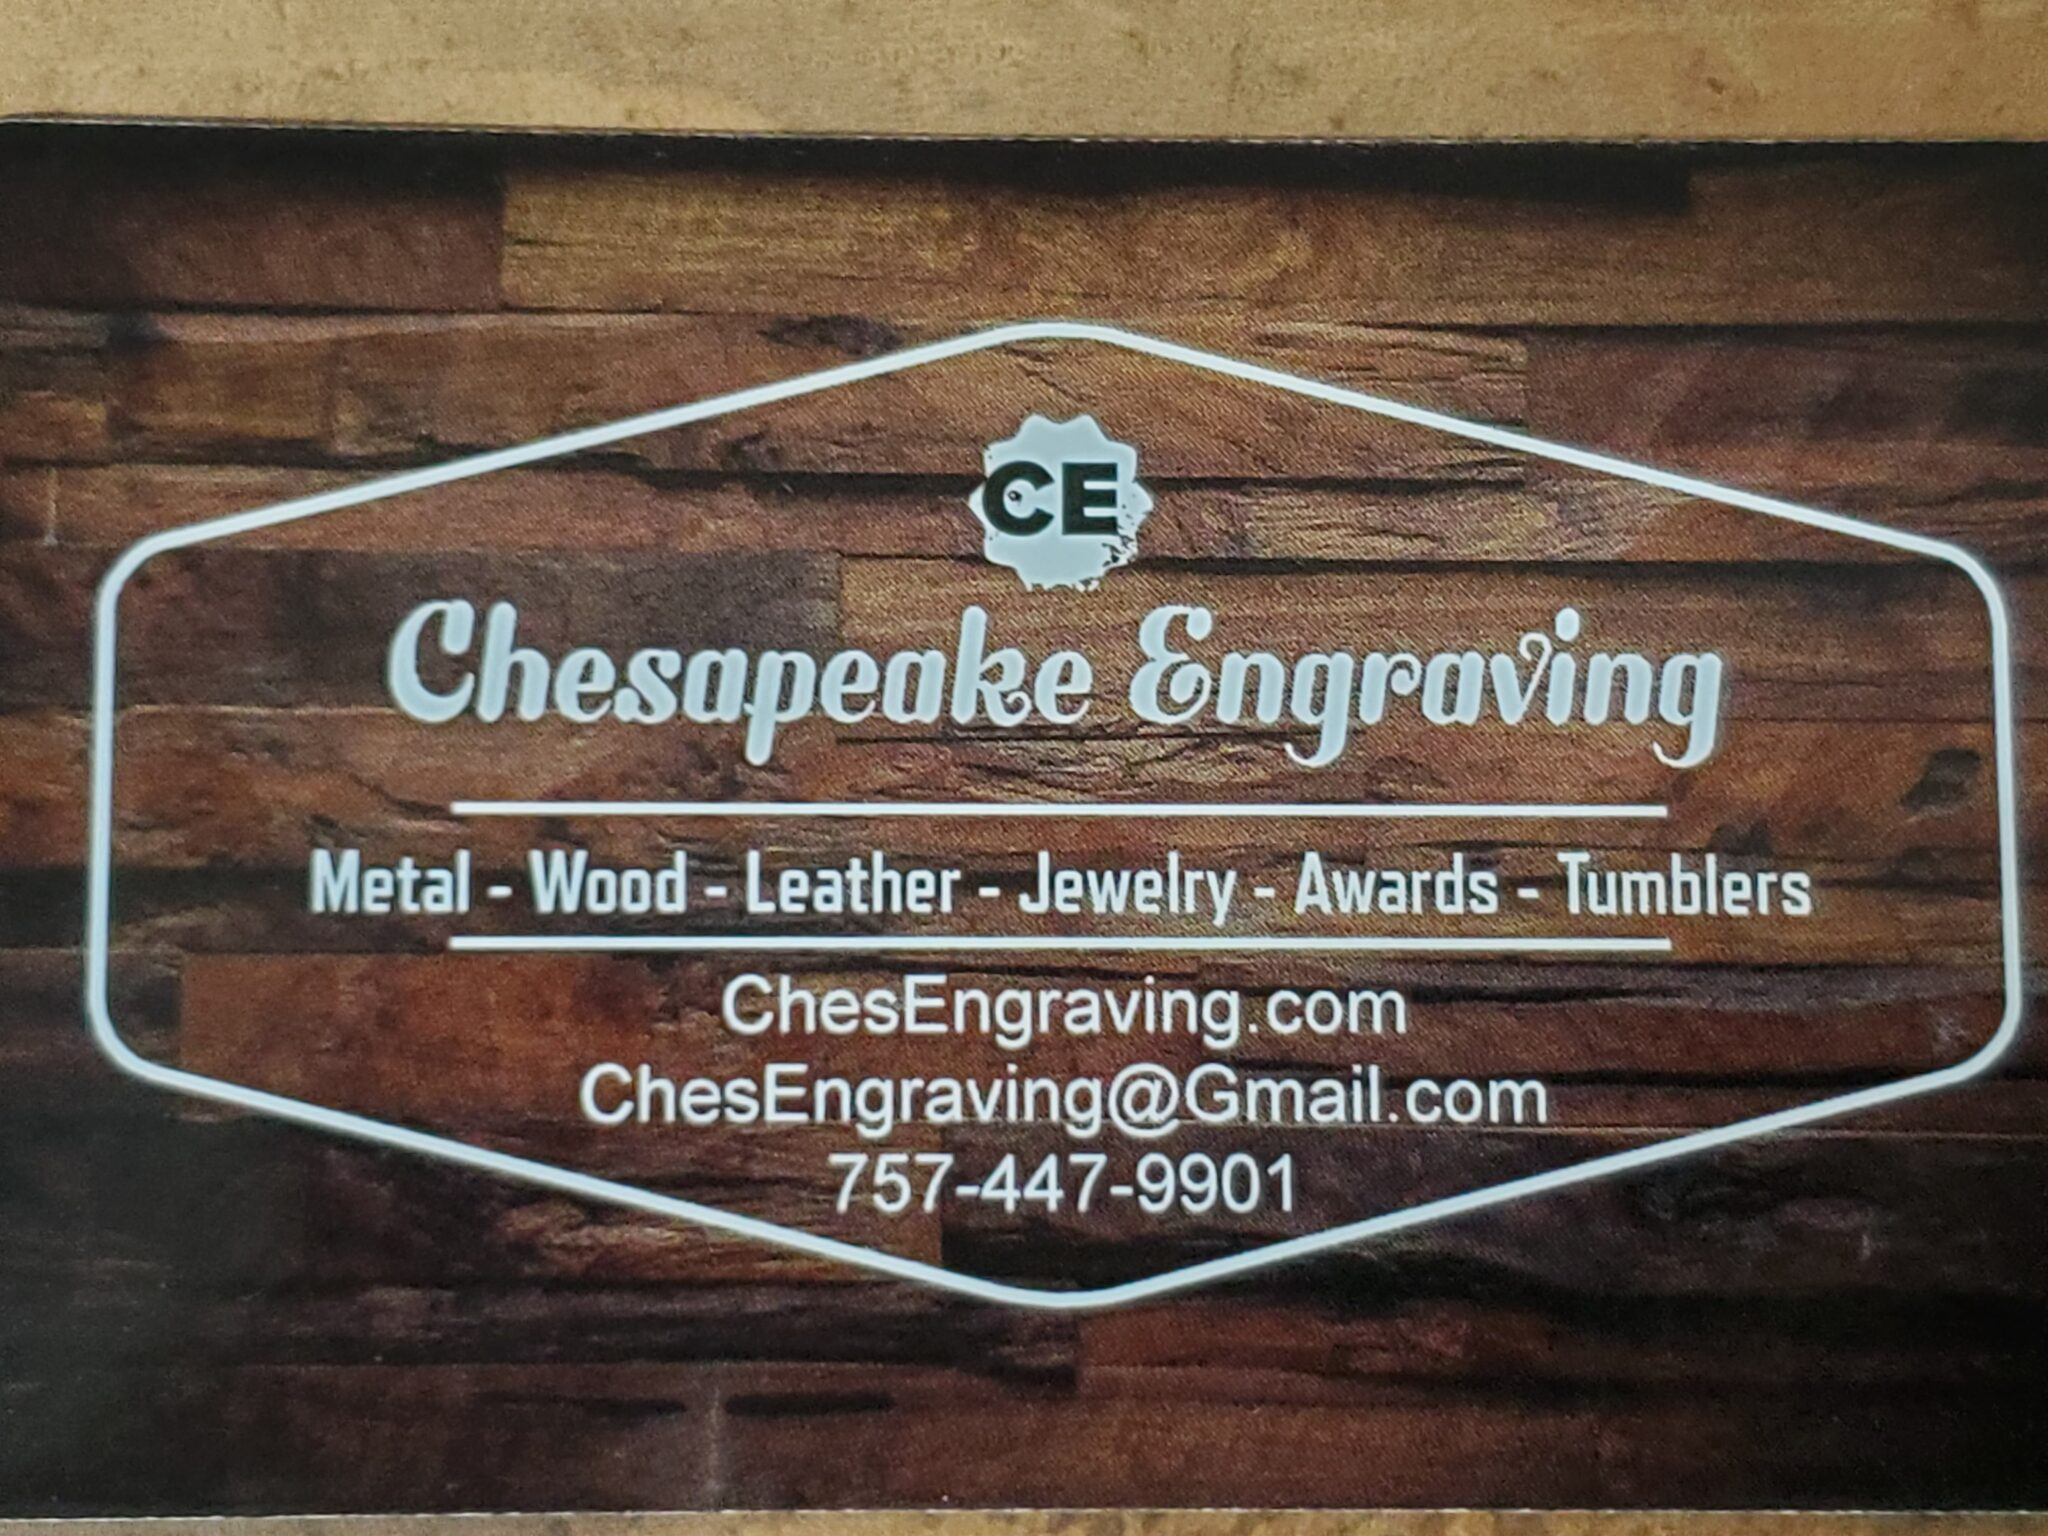 Chesapeake Engraving Provides Laser Engraving And Etching Services In Southeastern Virginia.